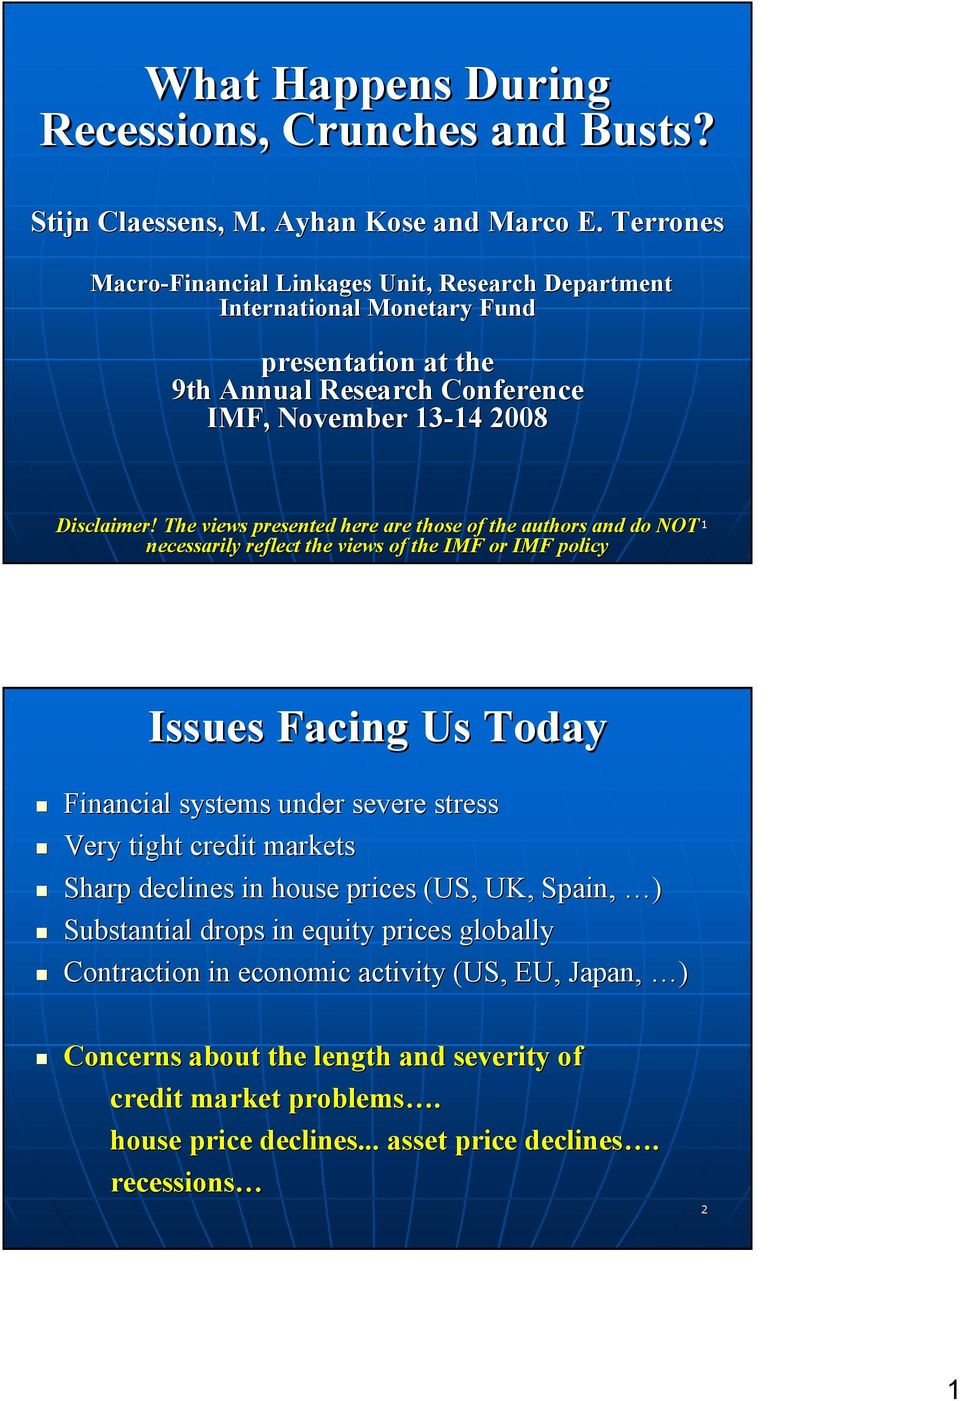 The views presented here are those of the authors and d do NOT necessarily reflect the views of the IMF or IMF policy 1 Issues Facing Us Today Financial systems under severe stress Very